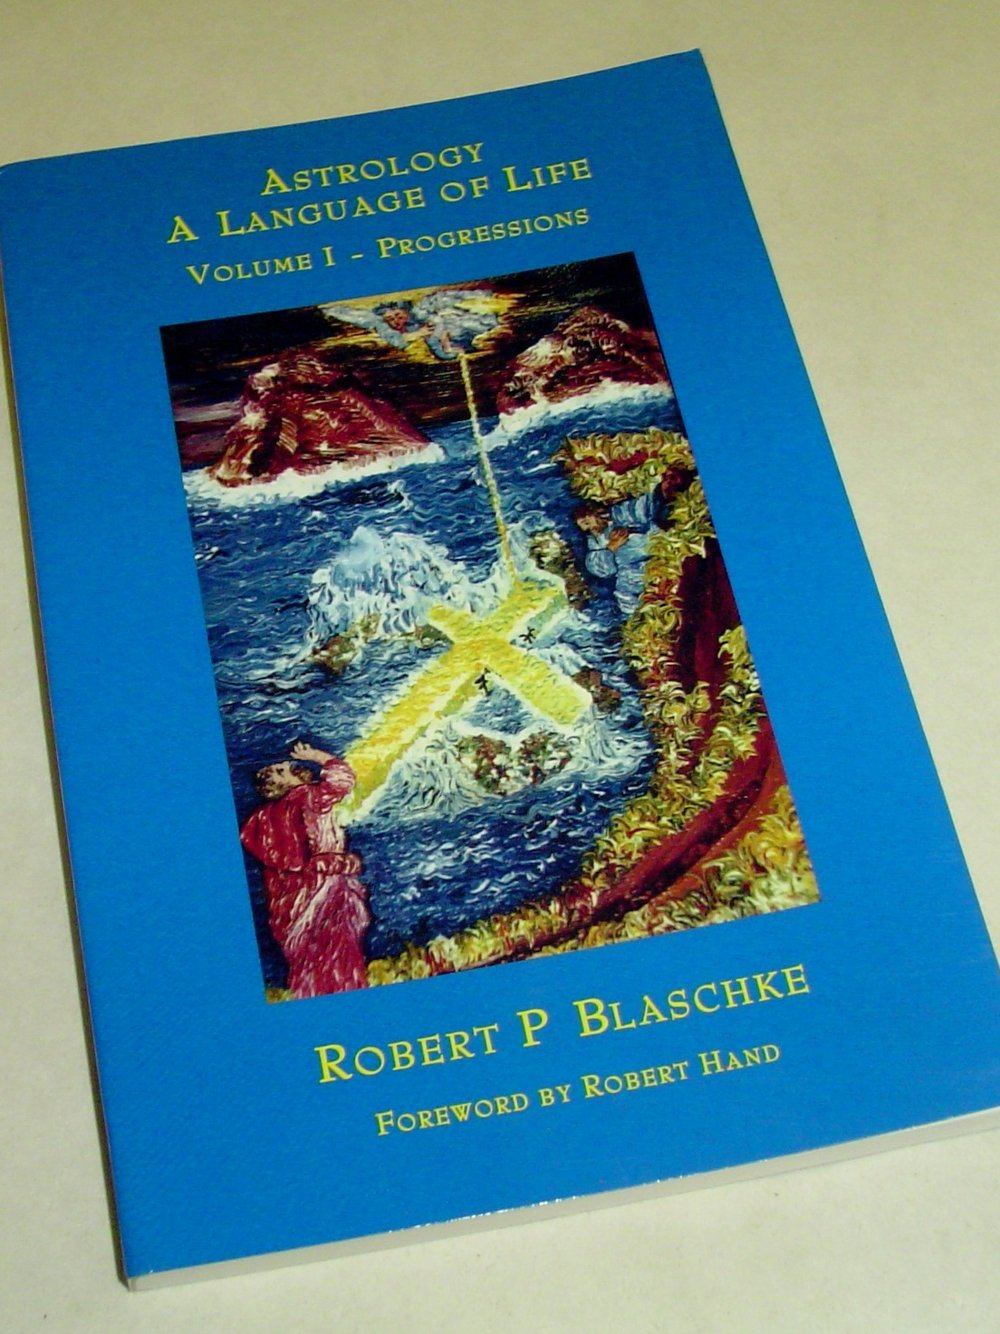 Astrology: A Language of Life - Part 1 - Progressions  By Robert P. Blaschke  $35  This foundational book on astrology helps you understand secondary, tertiary, and minor progressions. This book will be a reference standard for generations.   Read More on eBay